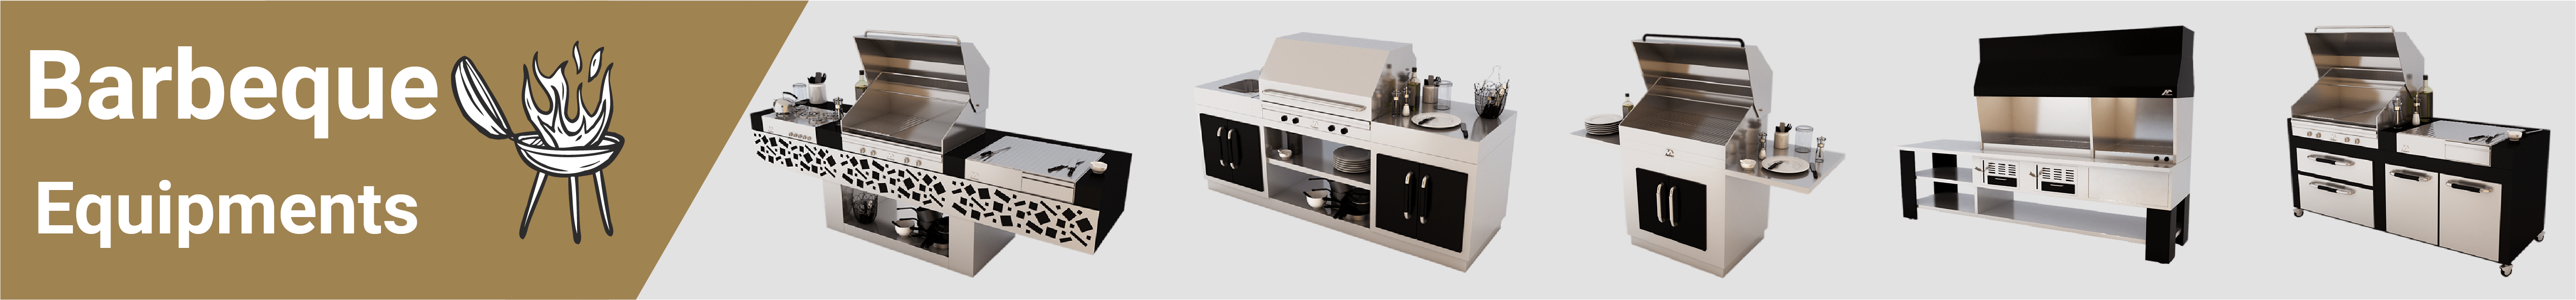 Hosinox for stainless steel equipment-Barbecue